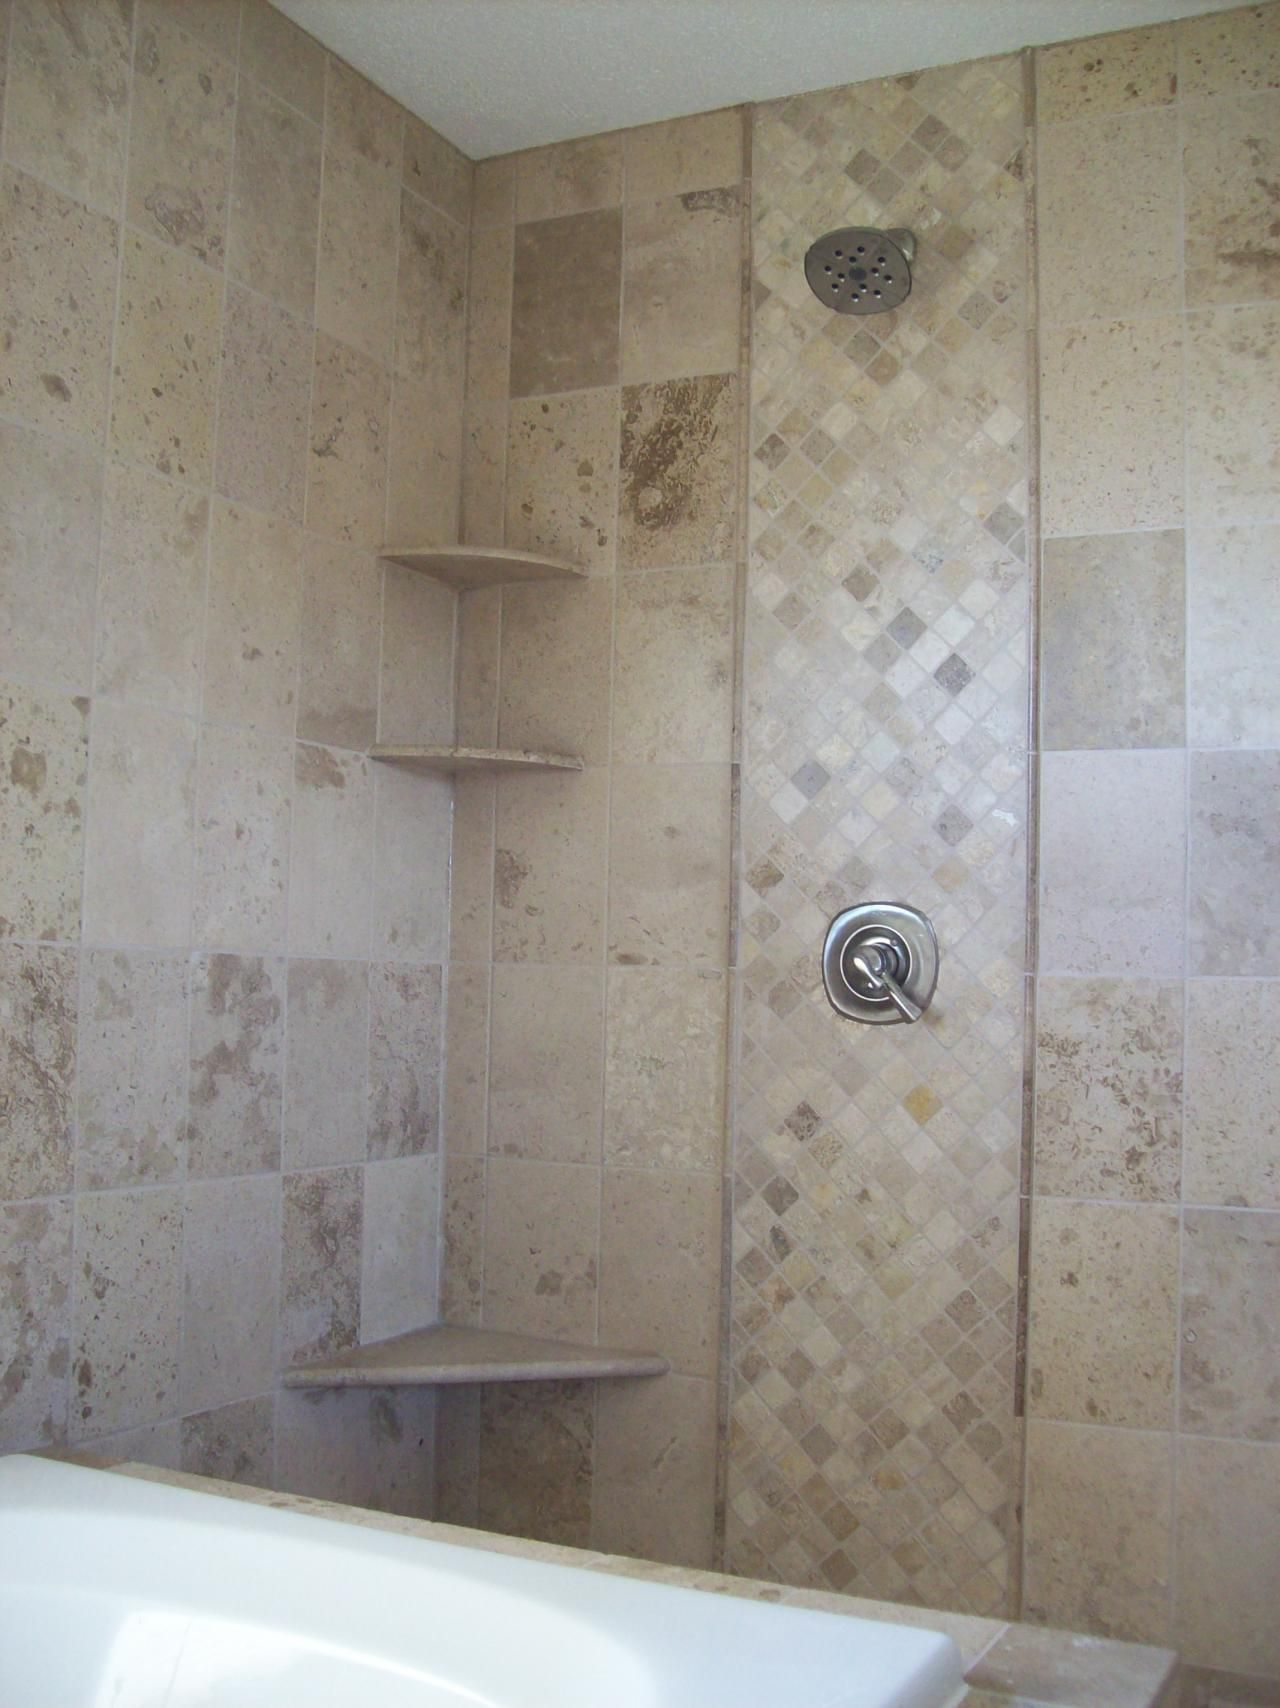 Natural stone tile shower and tub surround tile flooring for Tile shower surround